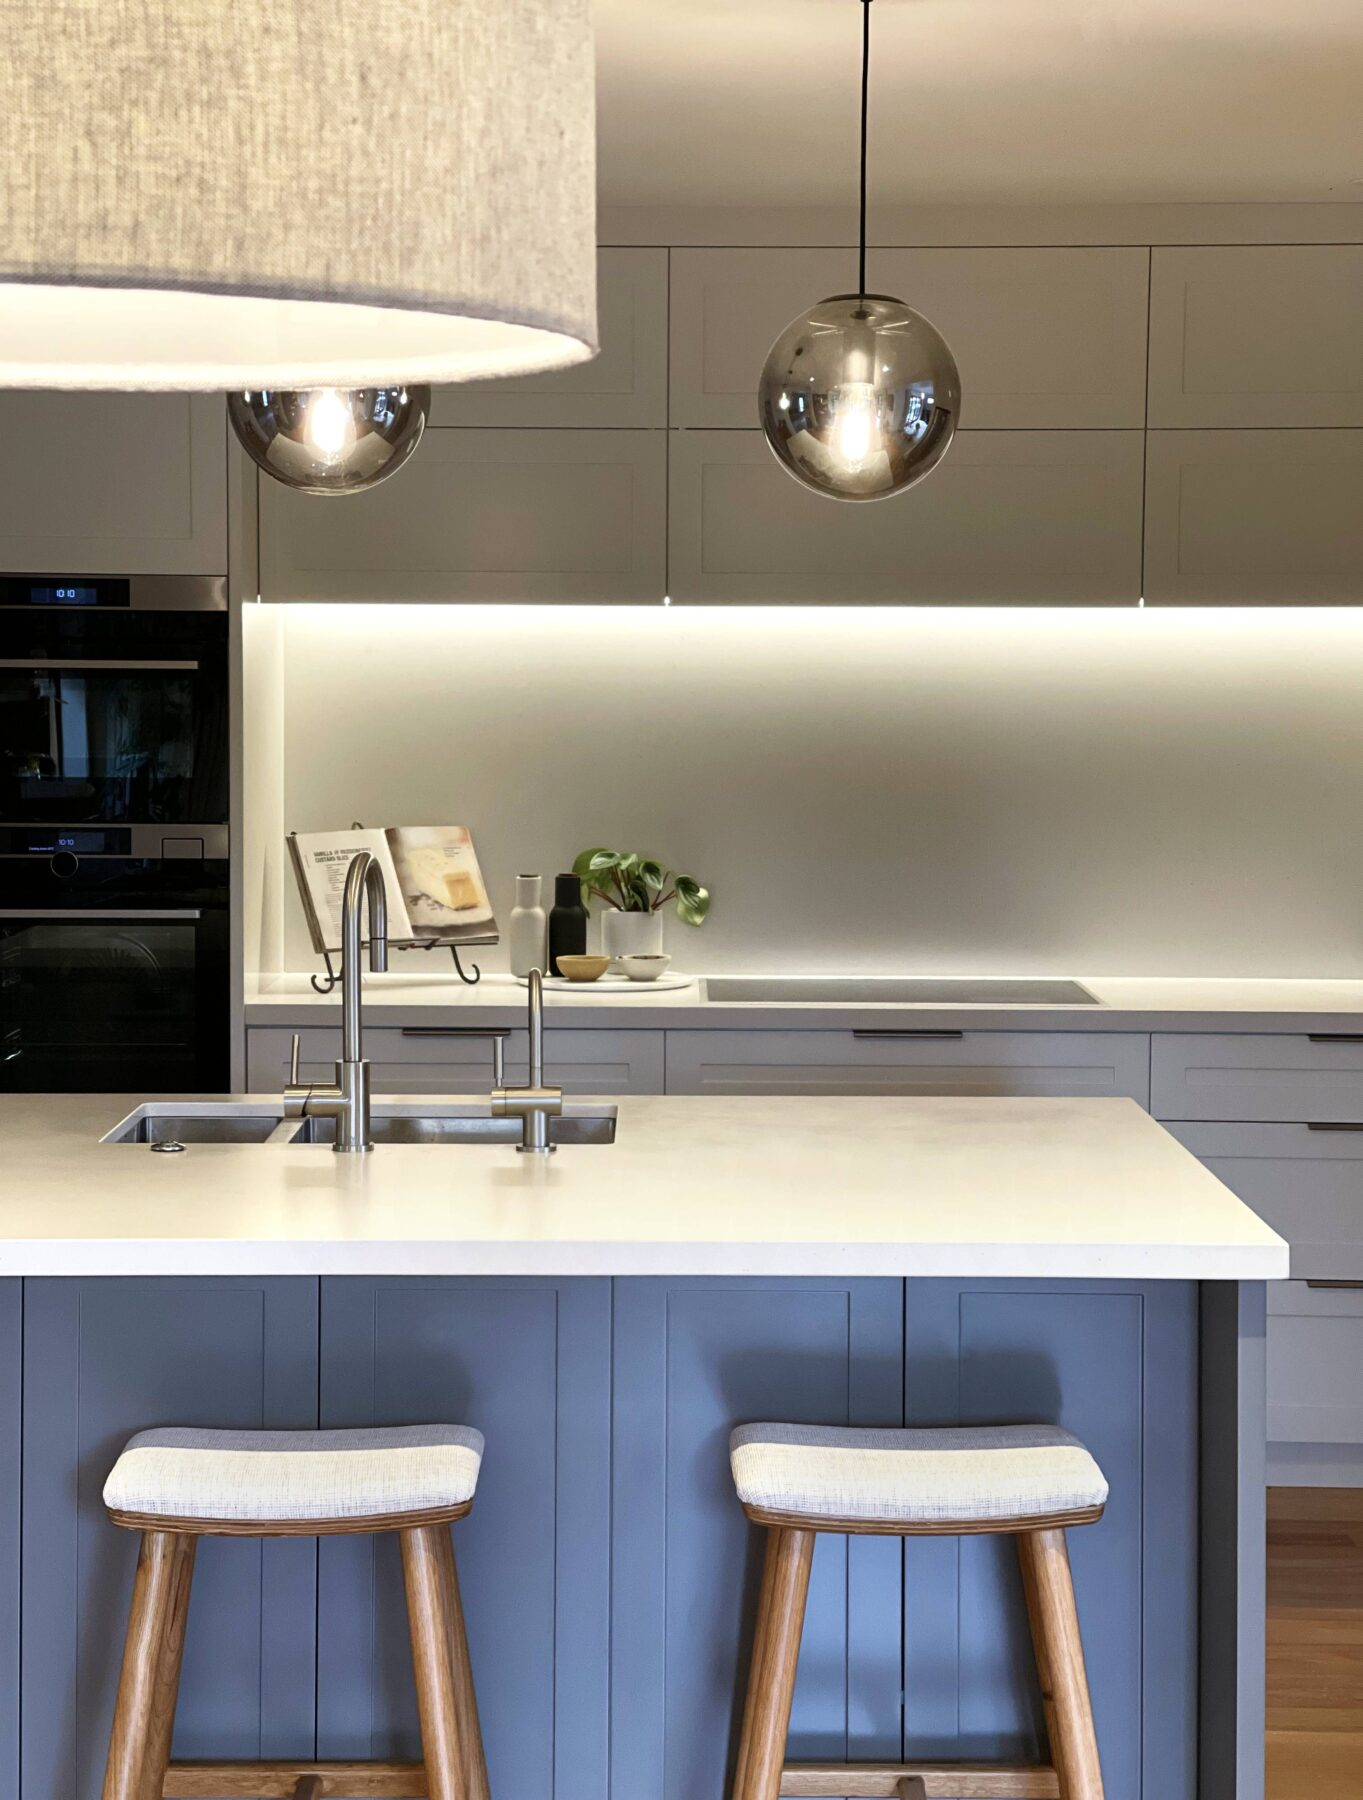 modern kitchen design white stone top, blue hamptons style panelling detailed cabinets, wooden barstools with fabric seats, sliver hanging pendent lights